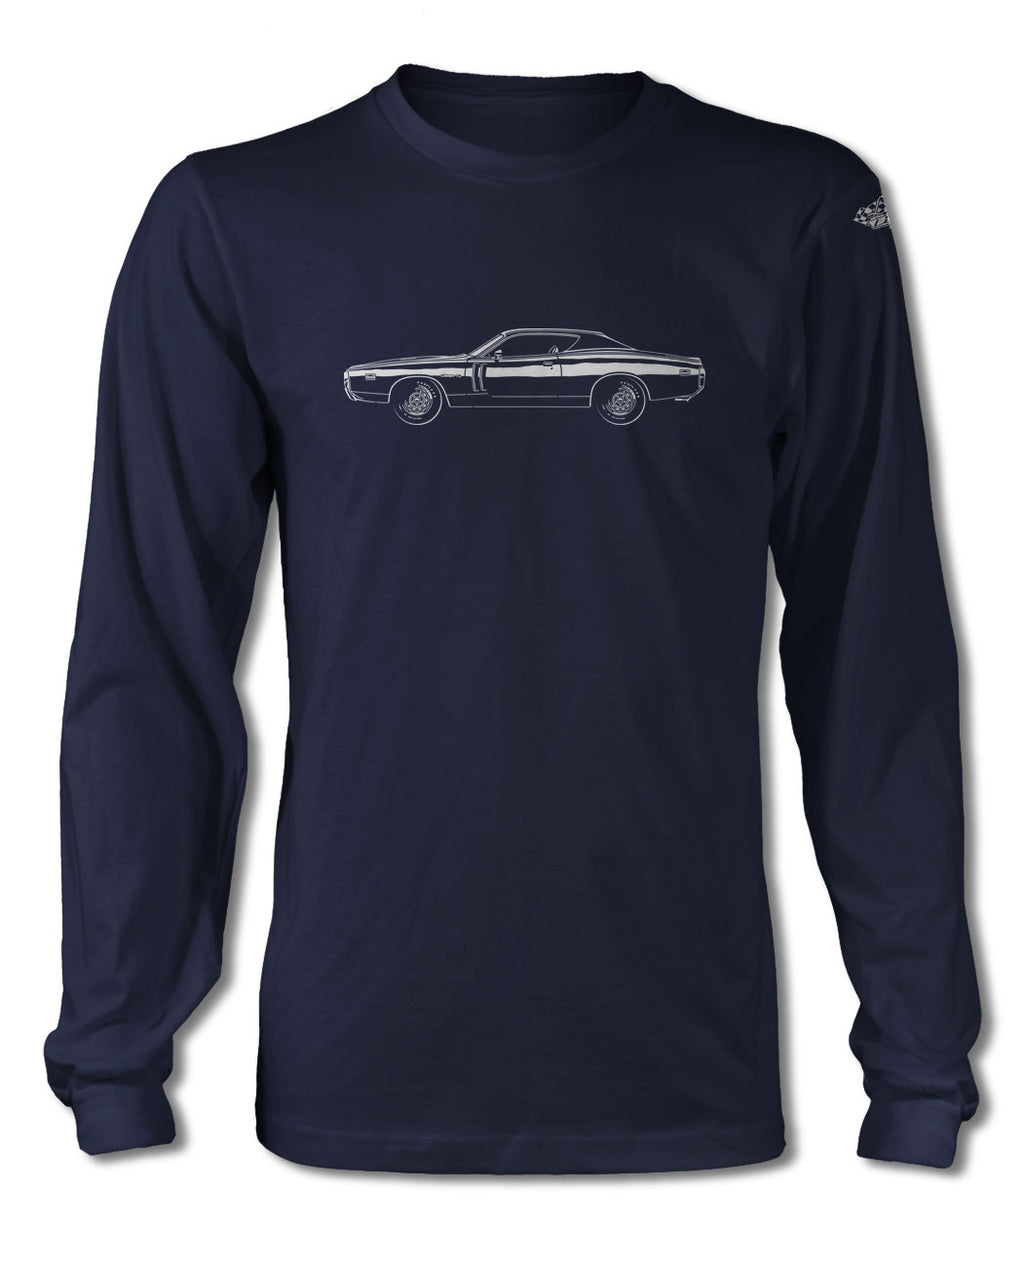 1971 Dodge Charger RT Hardtop T-Shirt - Long Sleeves - Side View